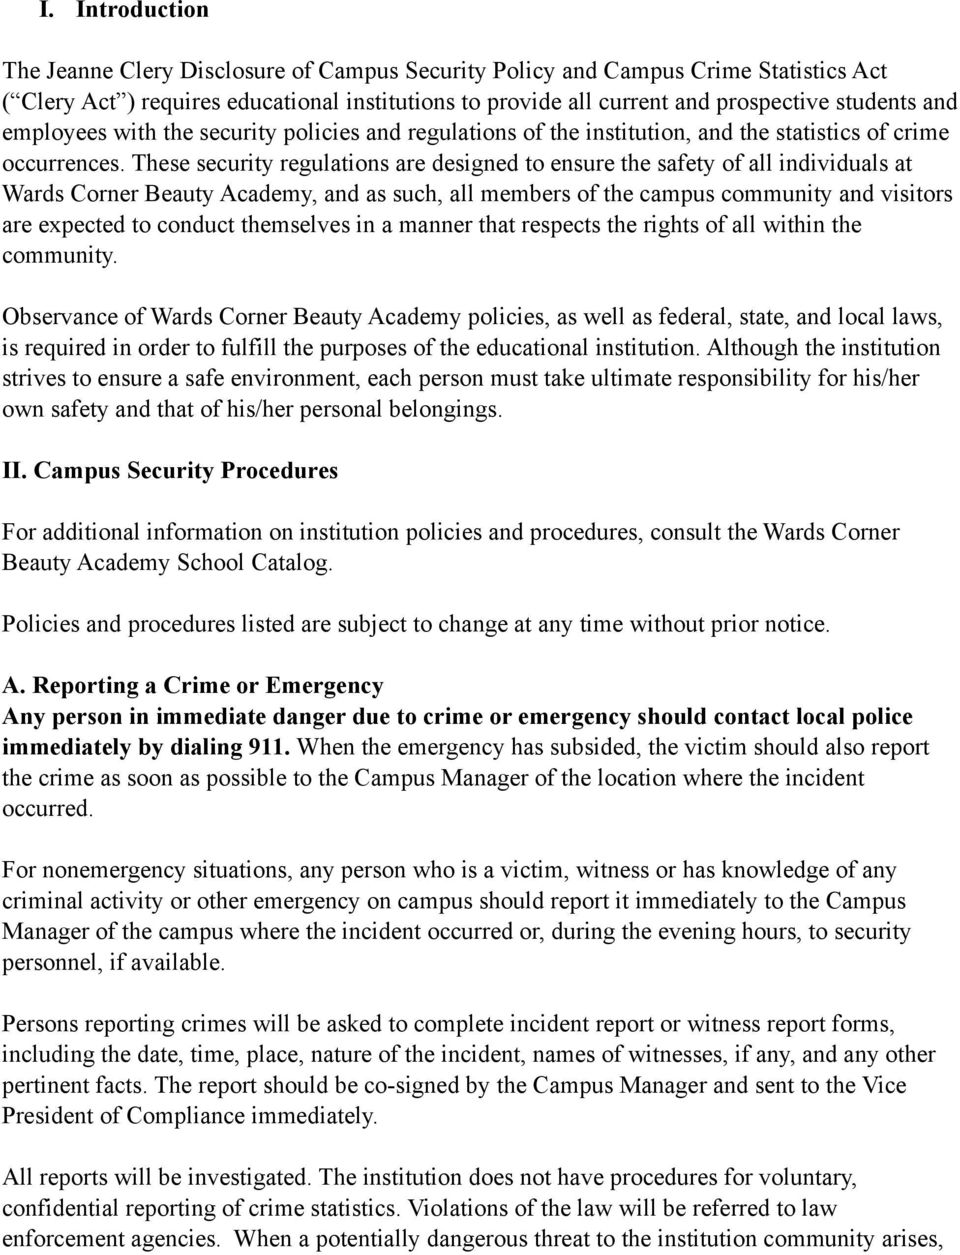 These security regulations are designed to ensure the safety of all individuals at Wards Corner Beauty Academy, and as such, all members of the campus community and visitors are expected to conduct